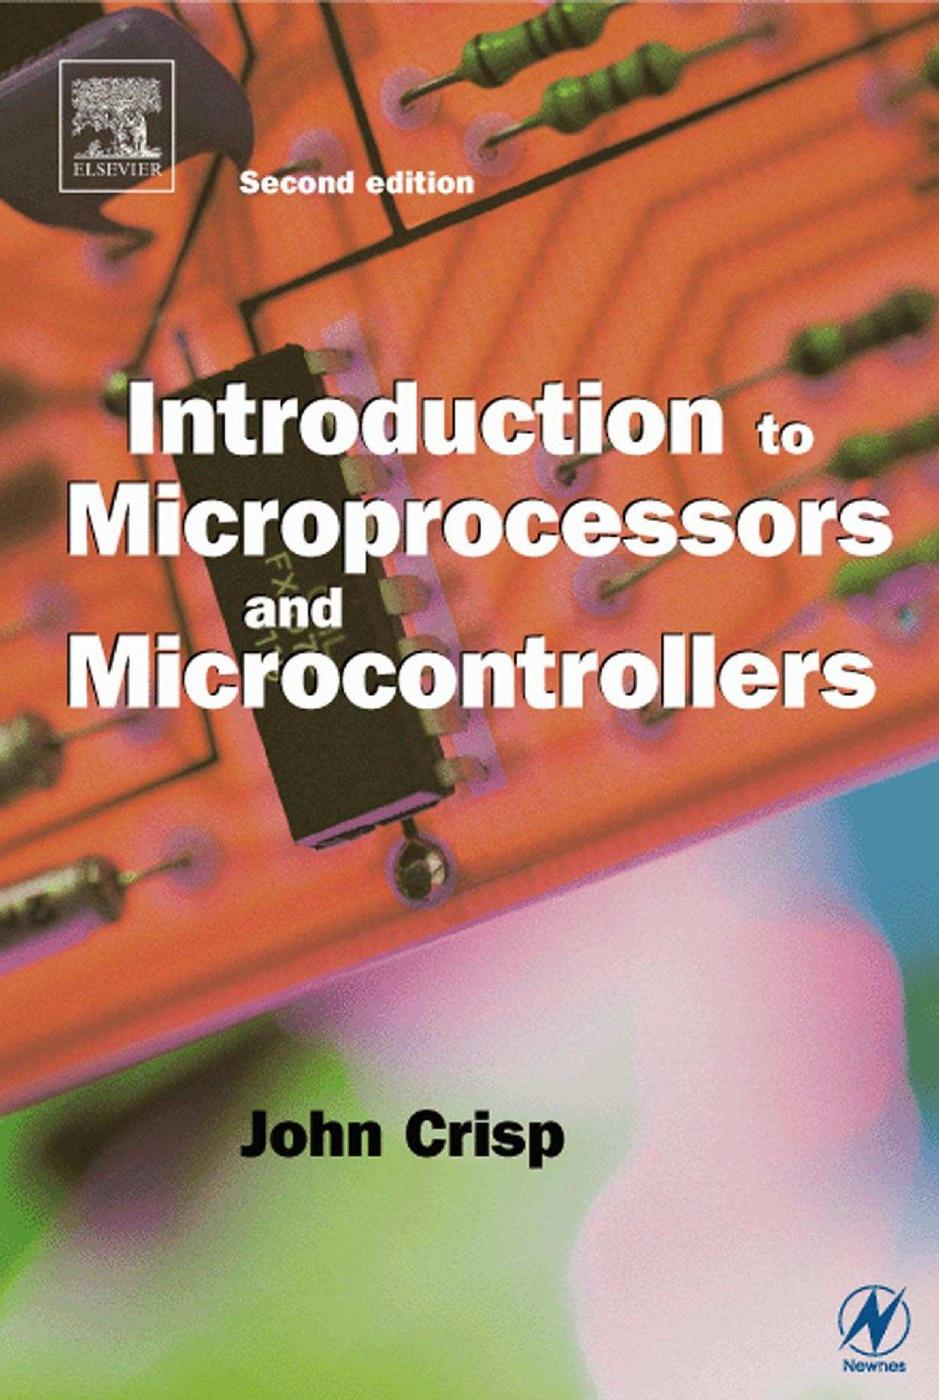 Crisp John - Introduction to Microprocessors and Microcontrollers скачать бесплатно